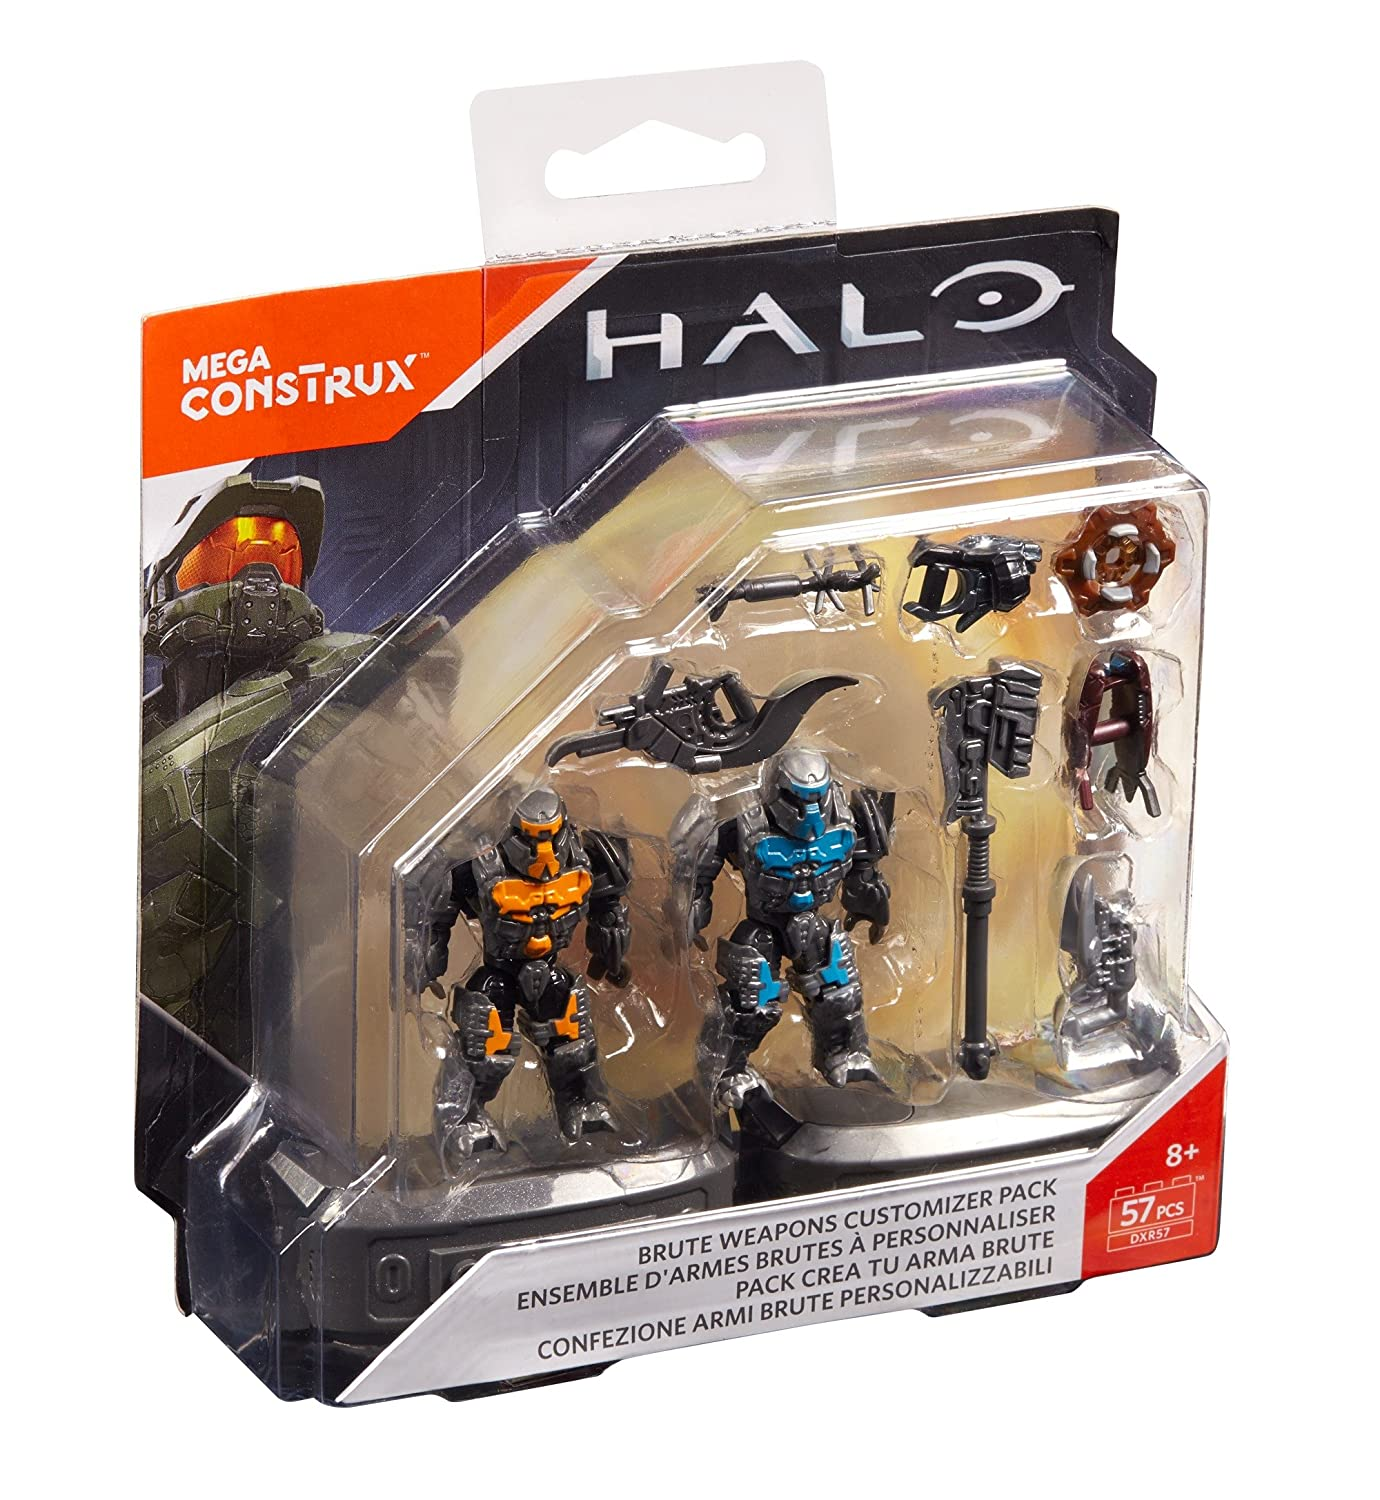 Mega Construx Halo Brute Weapons Pack